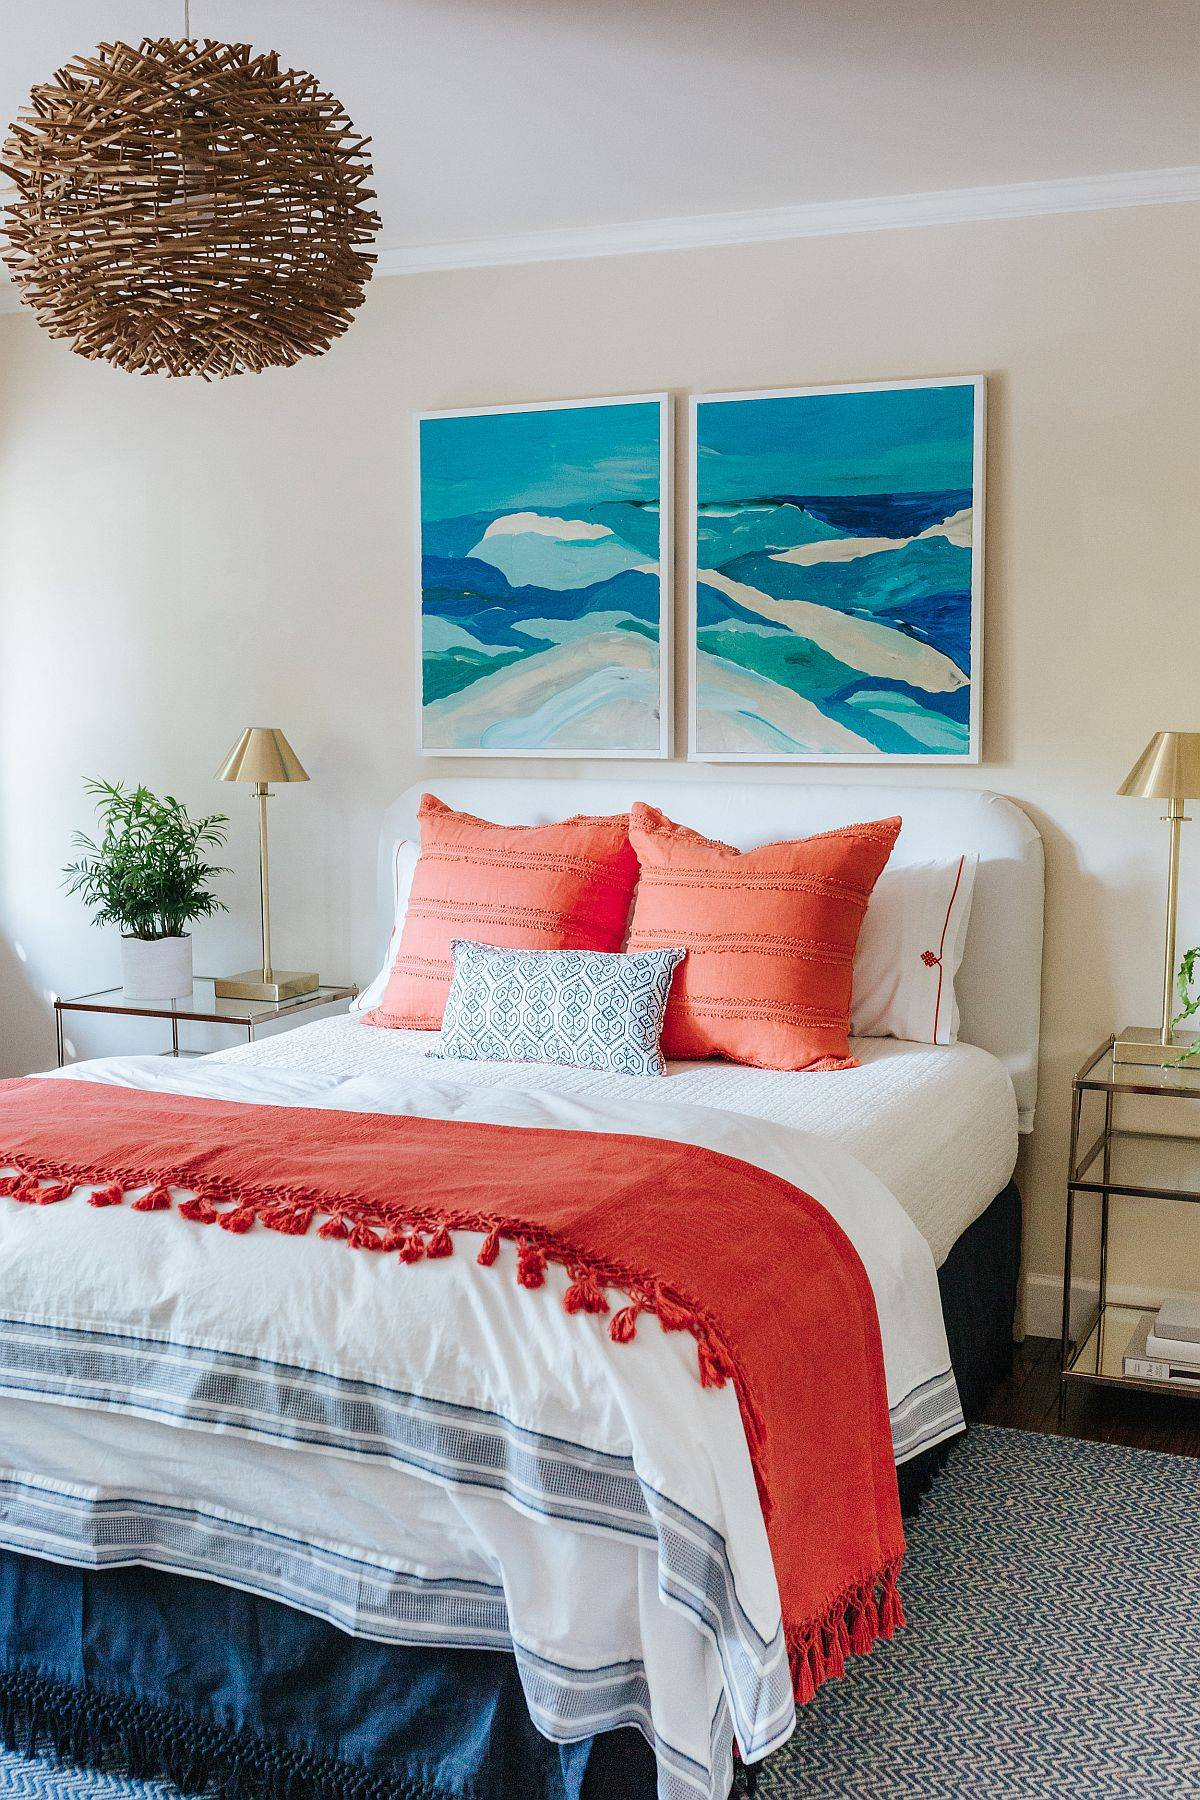 Bold-and-bright-coral-accent-pillows-along-with-blue-wall-art-steals-the-show-in-this-bedroom-11846